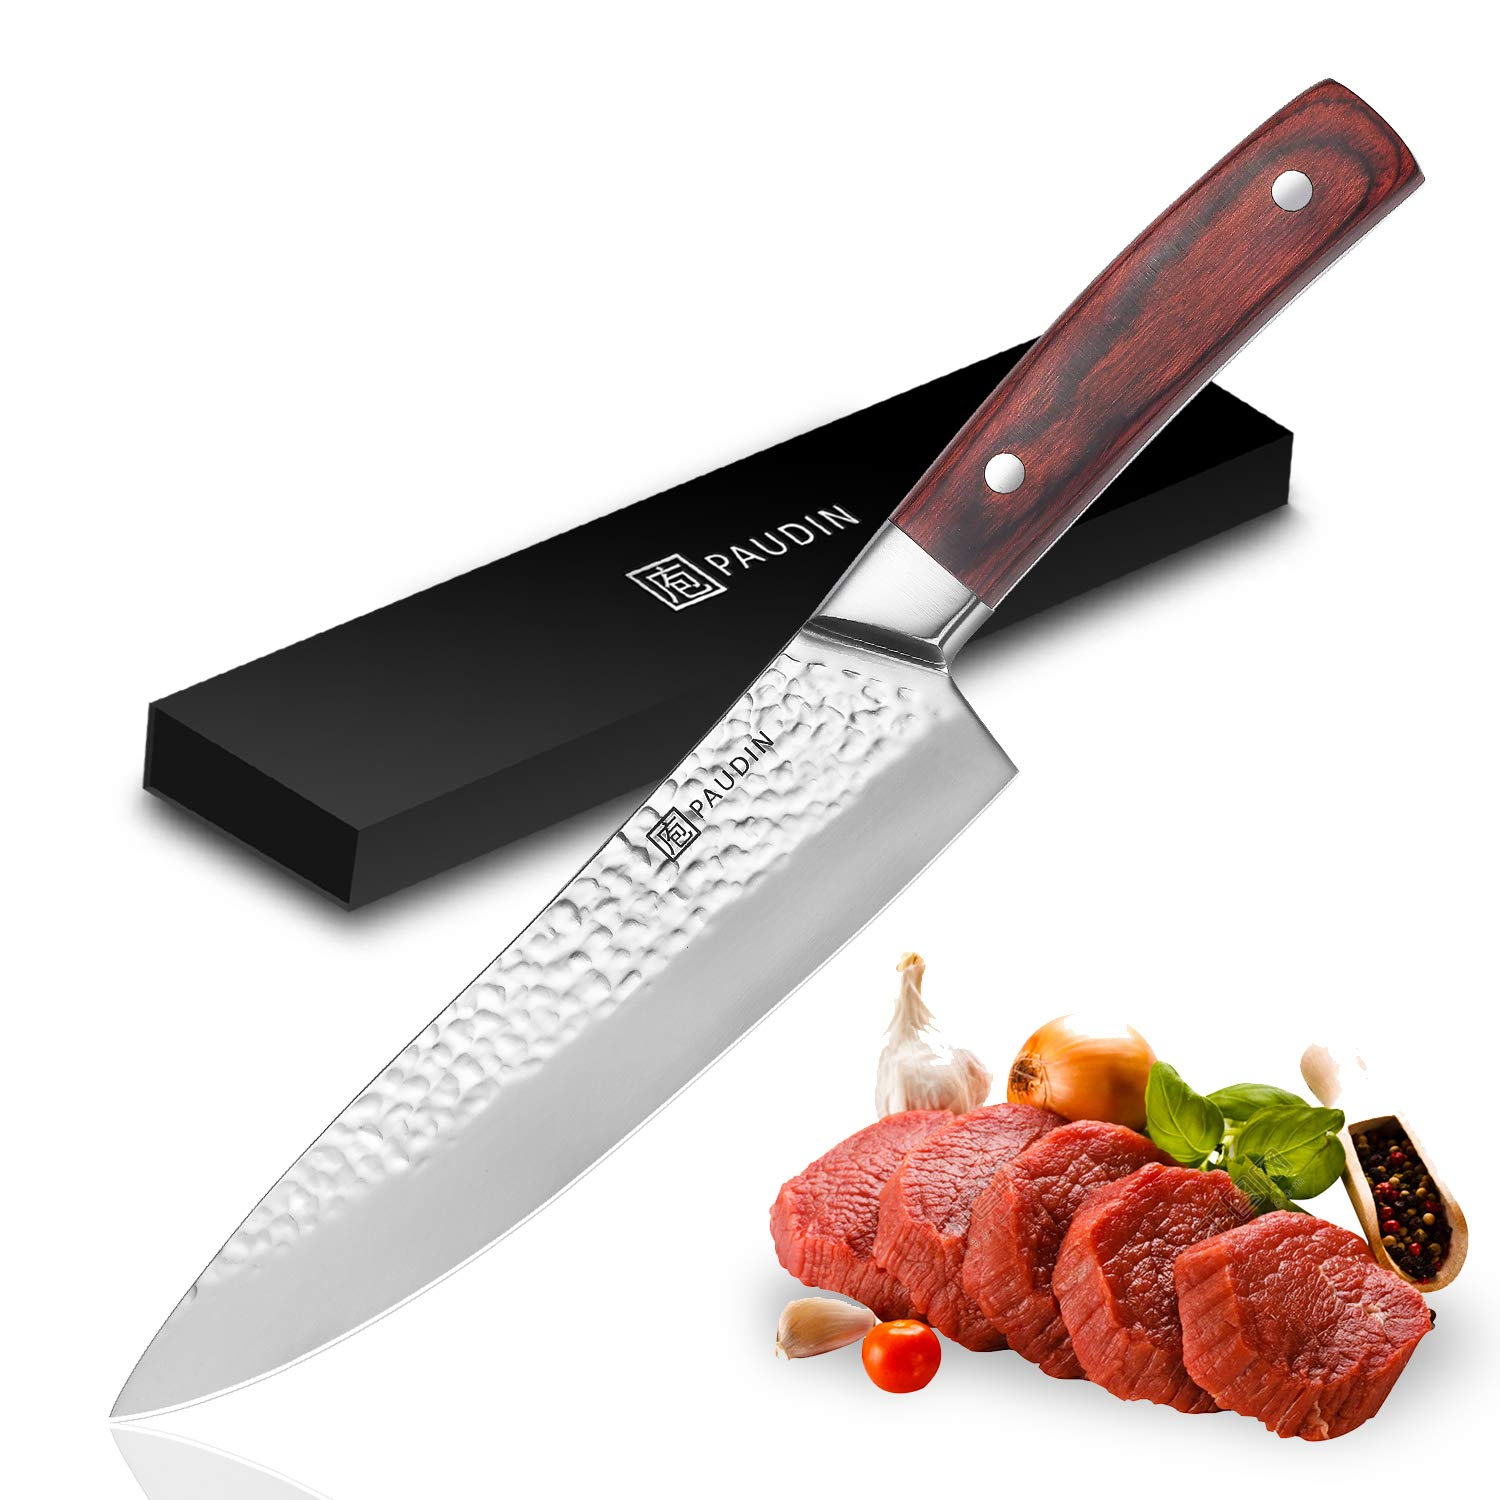 PAUDIN Chef Knife - Ultra Sharp 8 Inch Kitchen Knife, Superior Hammered Pattern High Carbon German Stainless Steel Chefs Knife with Ergonomic Handle, Cooking Knife Ideal for Home and Restaurant ... by PAUDIN